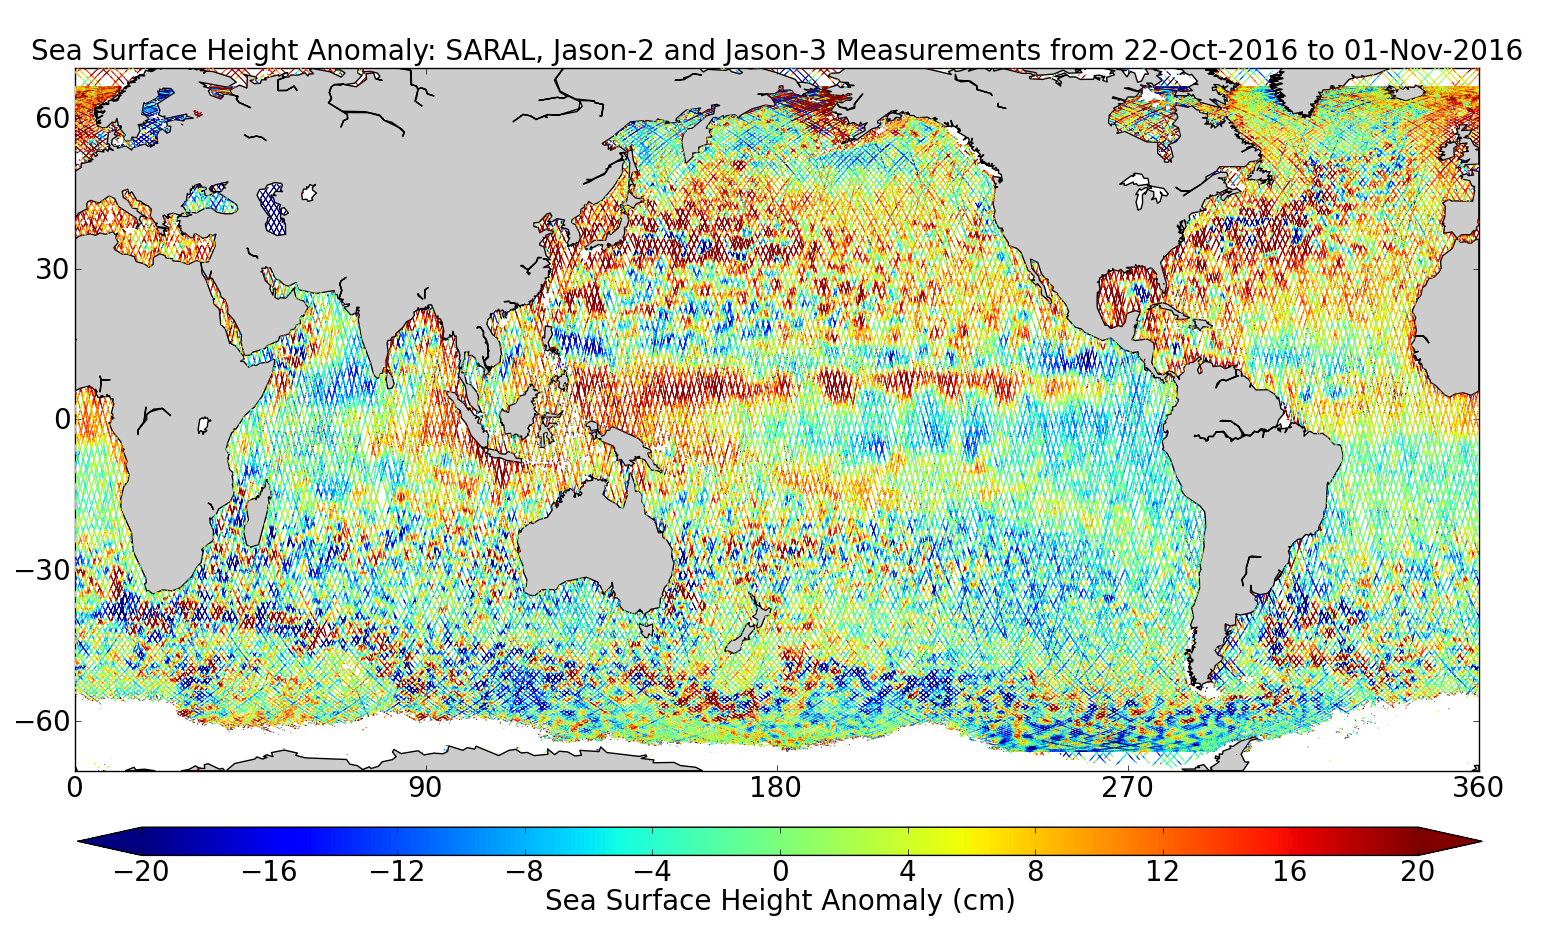 Sea Surface Height Anomaly: SARAL, Jason-2 and Jason-3 Measurements from 22-Oct-2016 to 01-Nov-2016